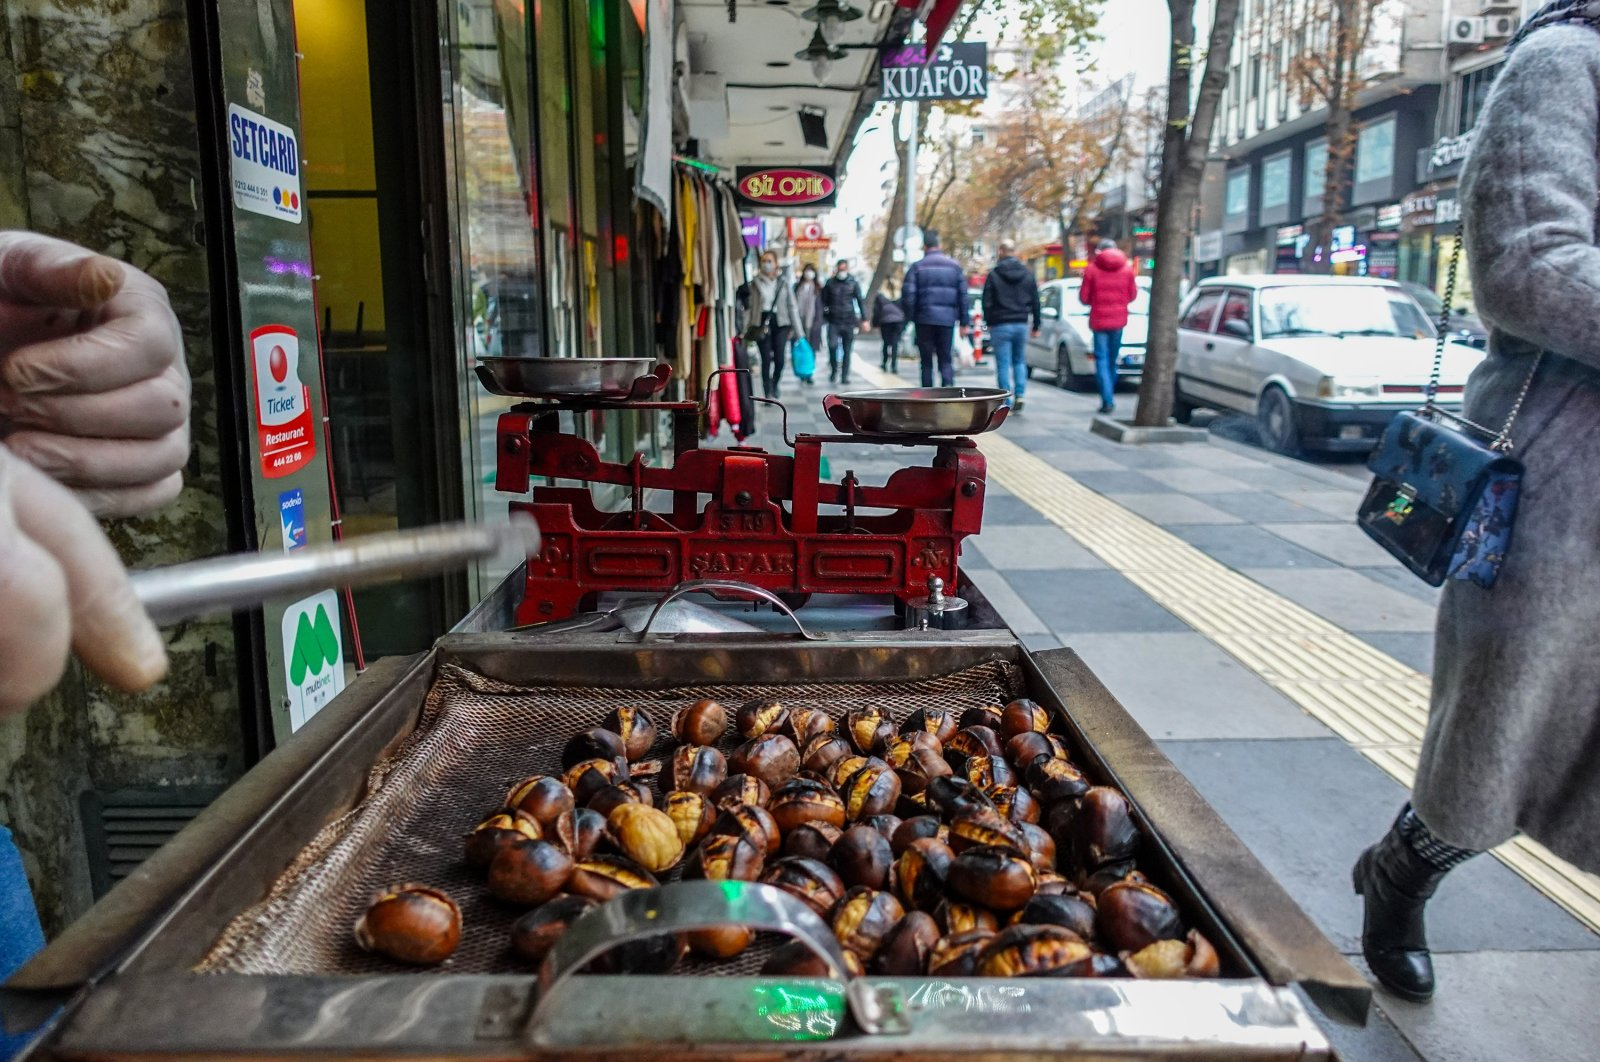 A chestnut stall with Tunalı Hilmi Street in the background. (Photo by Argun Konuk)